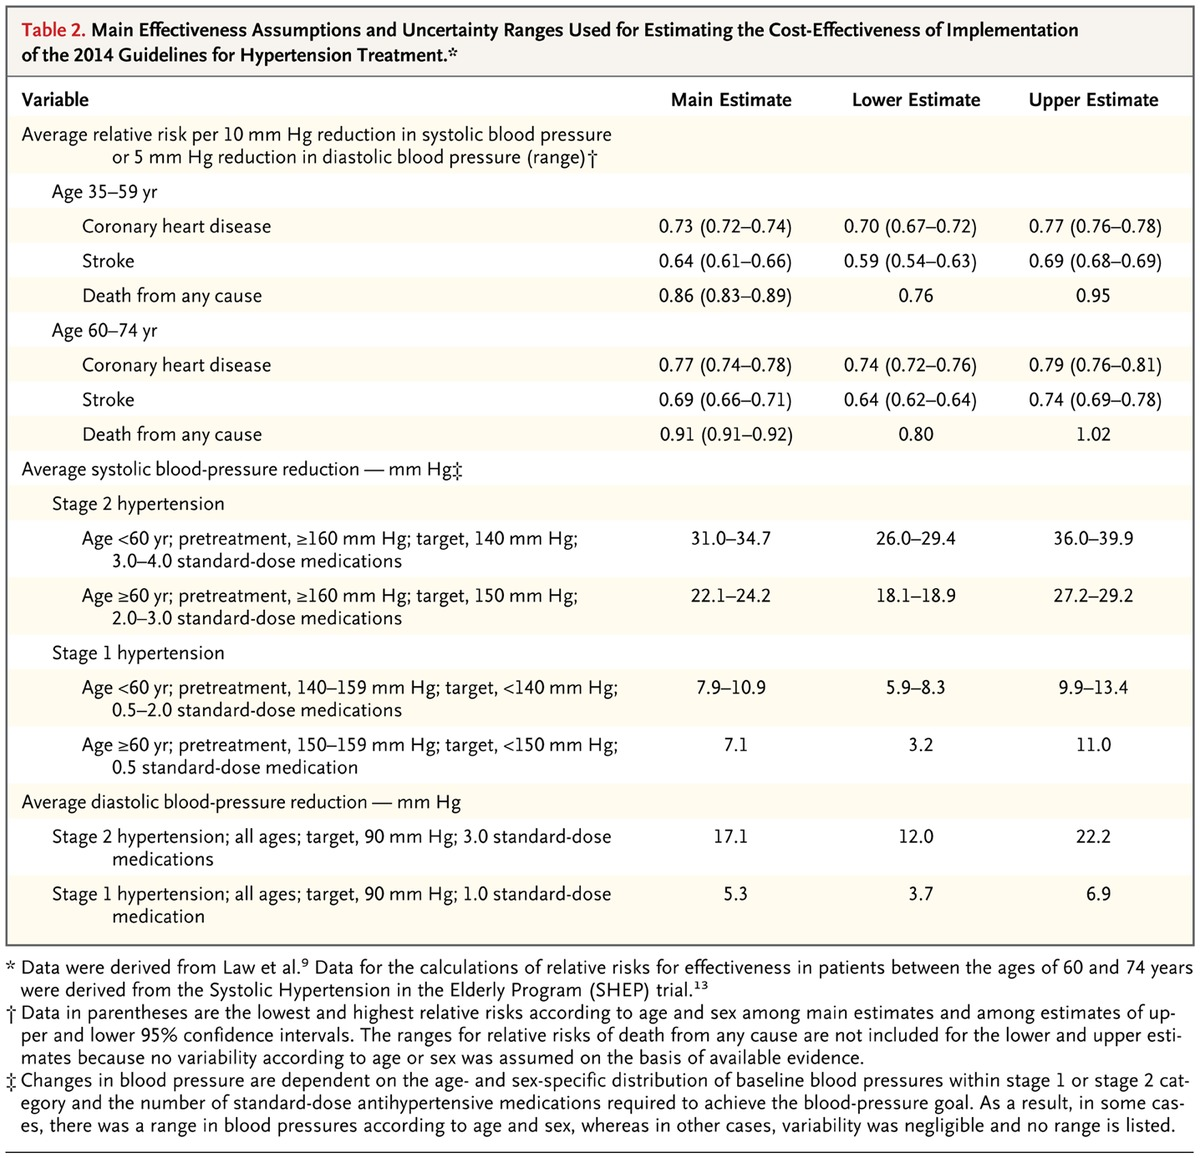 Cost effectiveness of hypertension therapy according to 2014 main effectiveness assumptions and uncertainty ranges used for estimating the cost effectiveness of implementation of the 2014 guidelines for hypertension nvjuhfo Choice Image